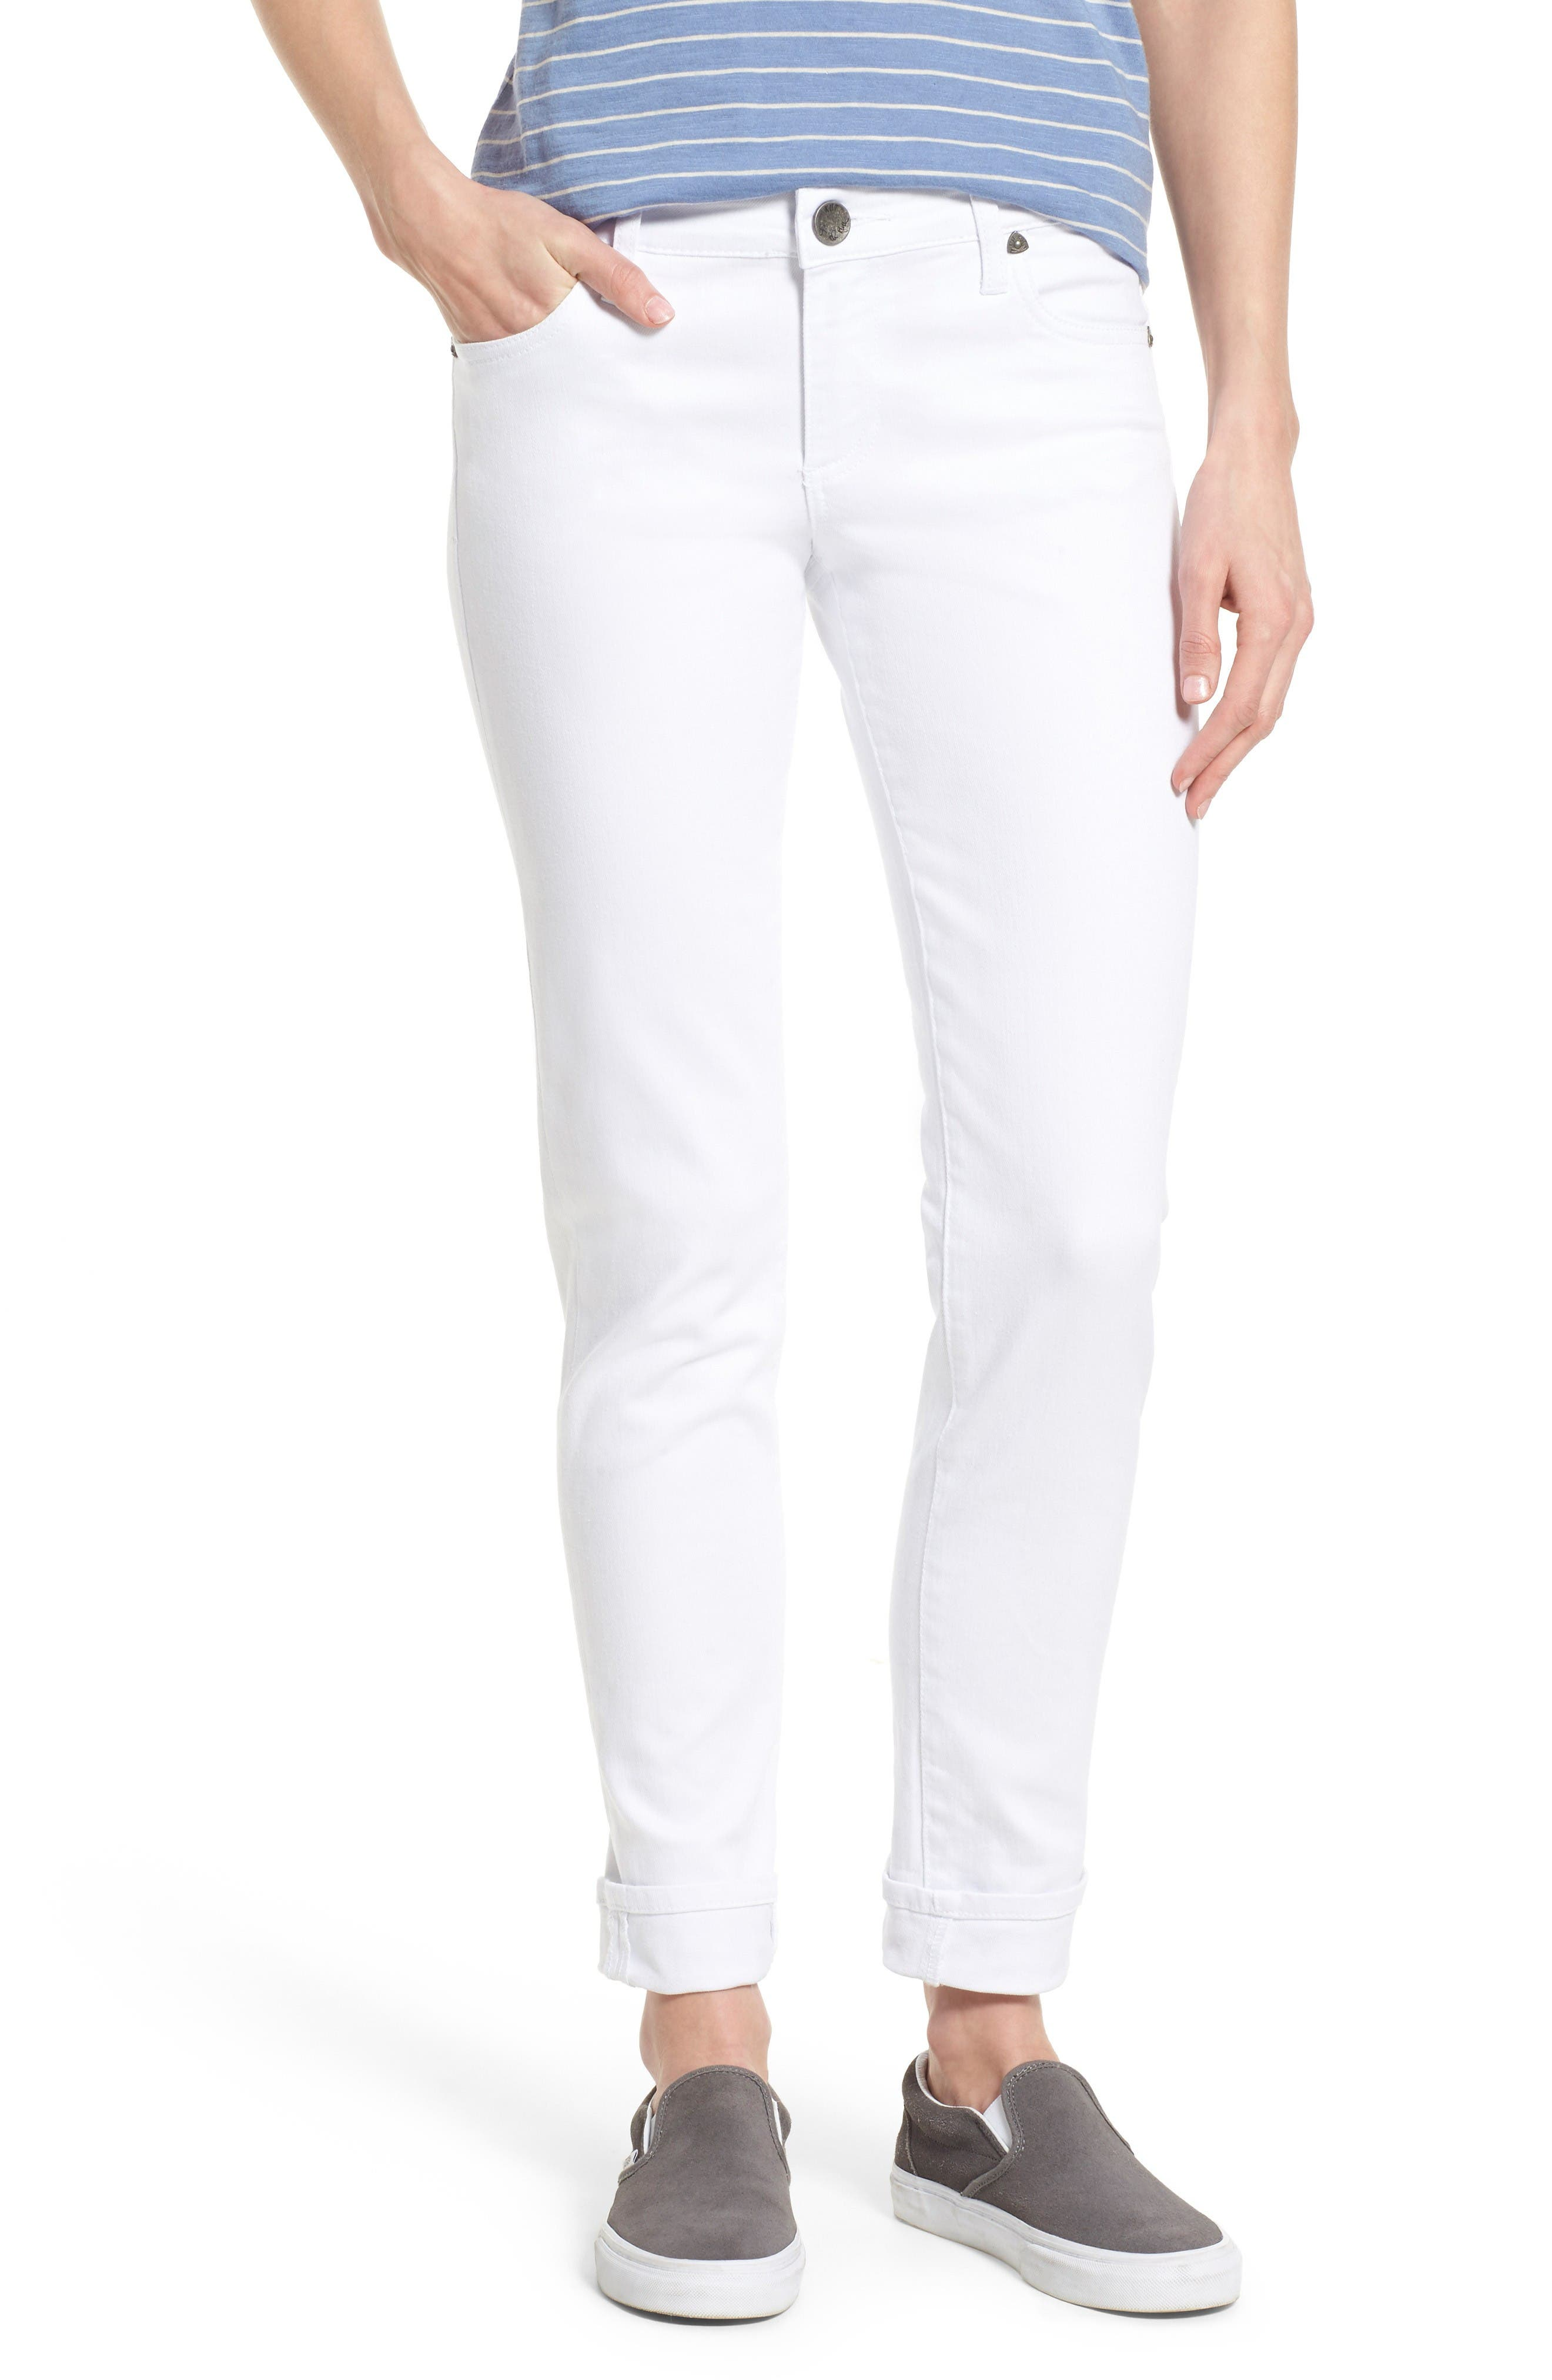 Alternate Image 1 Selected - KUT from the Kloth Catherine Stretch Boyfriend Jeans